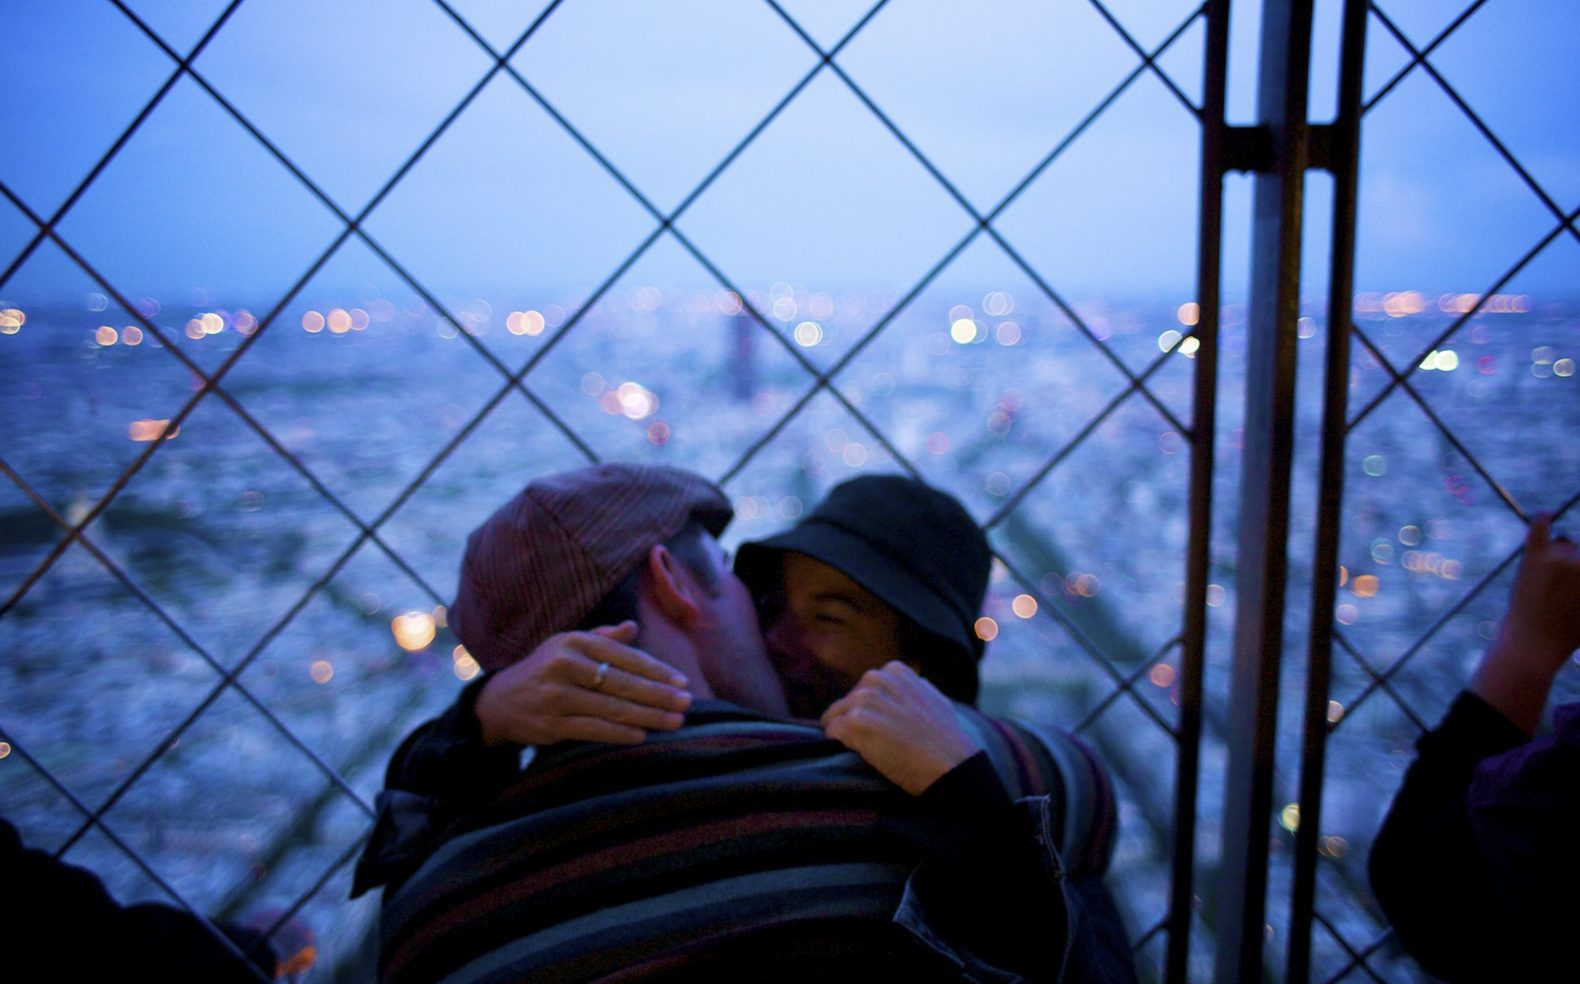 Professional travel photograph of a couple kissing against a fence overlooking a city at dusk.